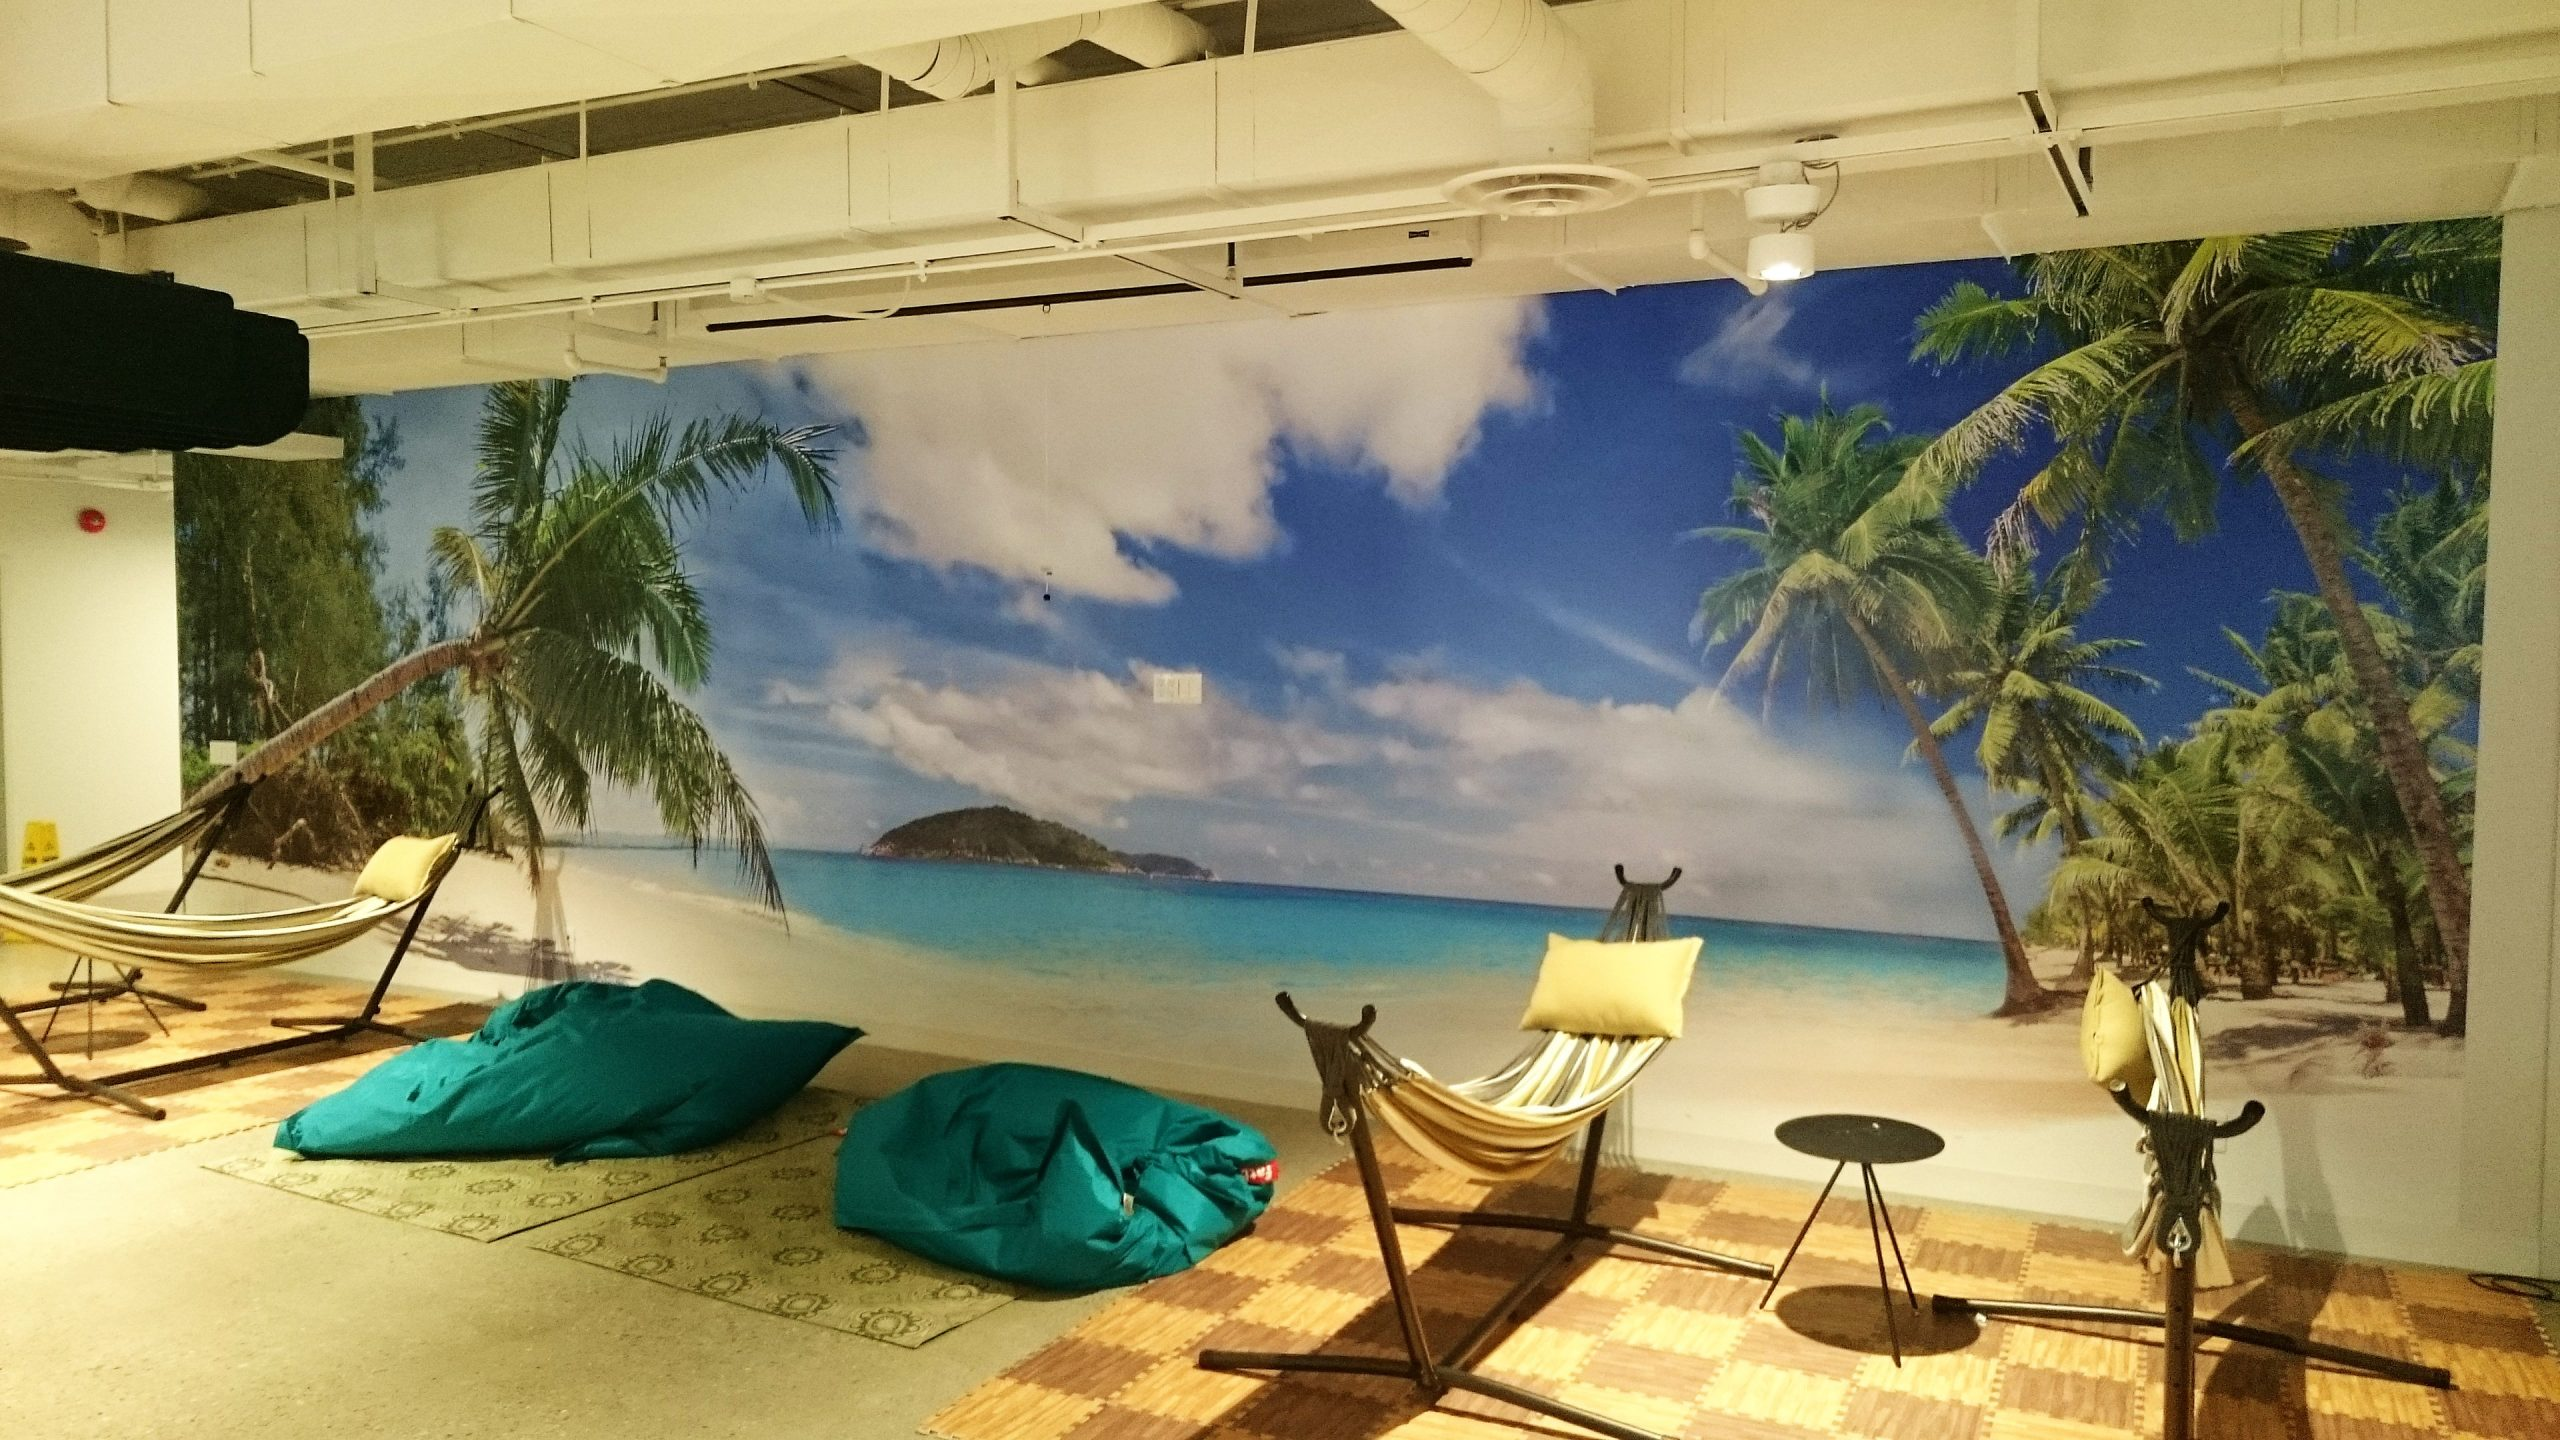 Wall Murals, Wall Graphics or Wallpaper?